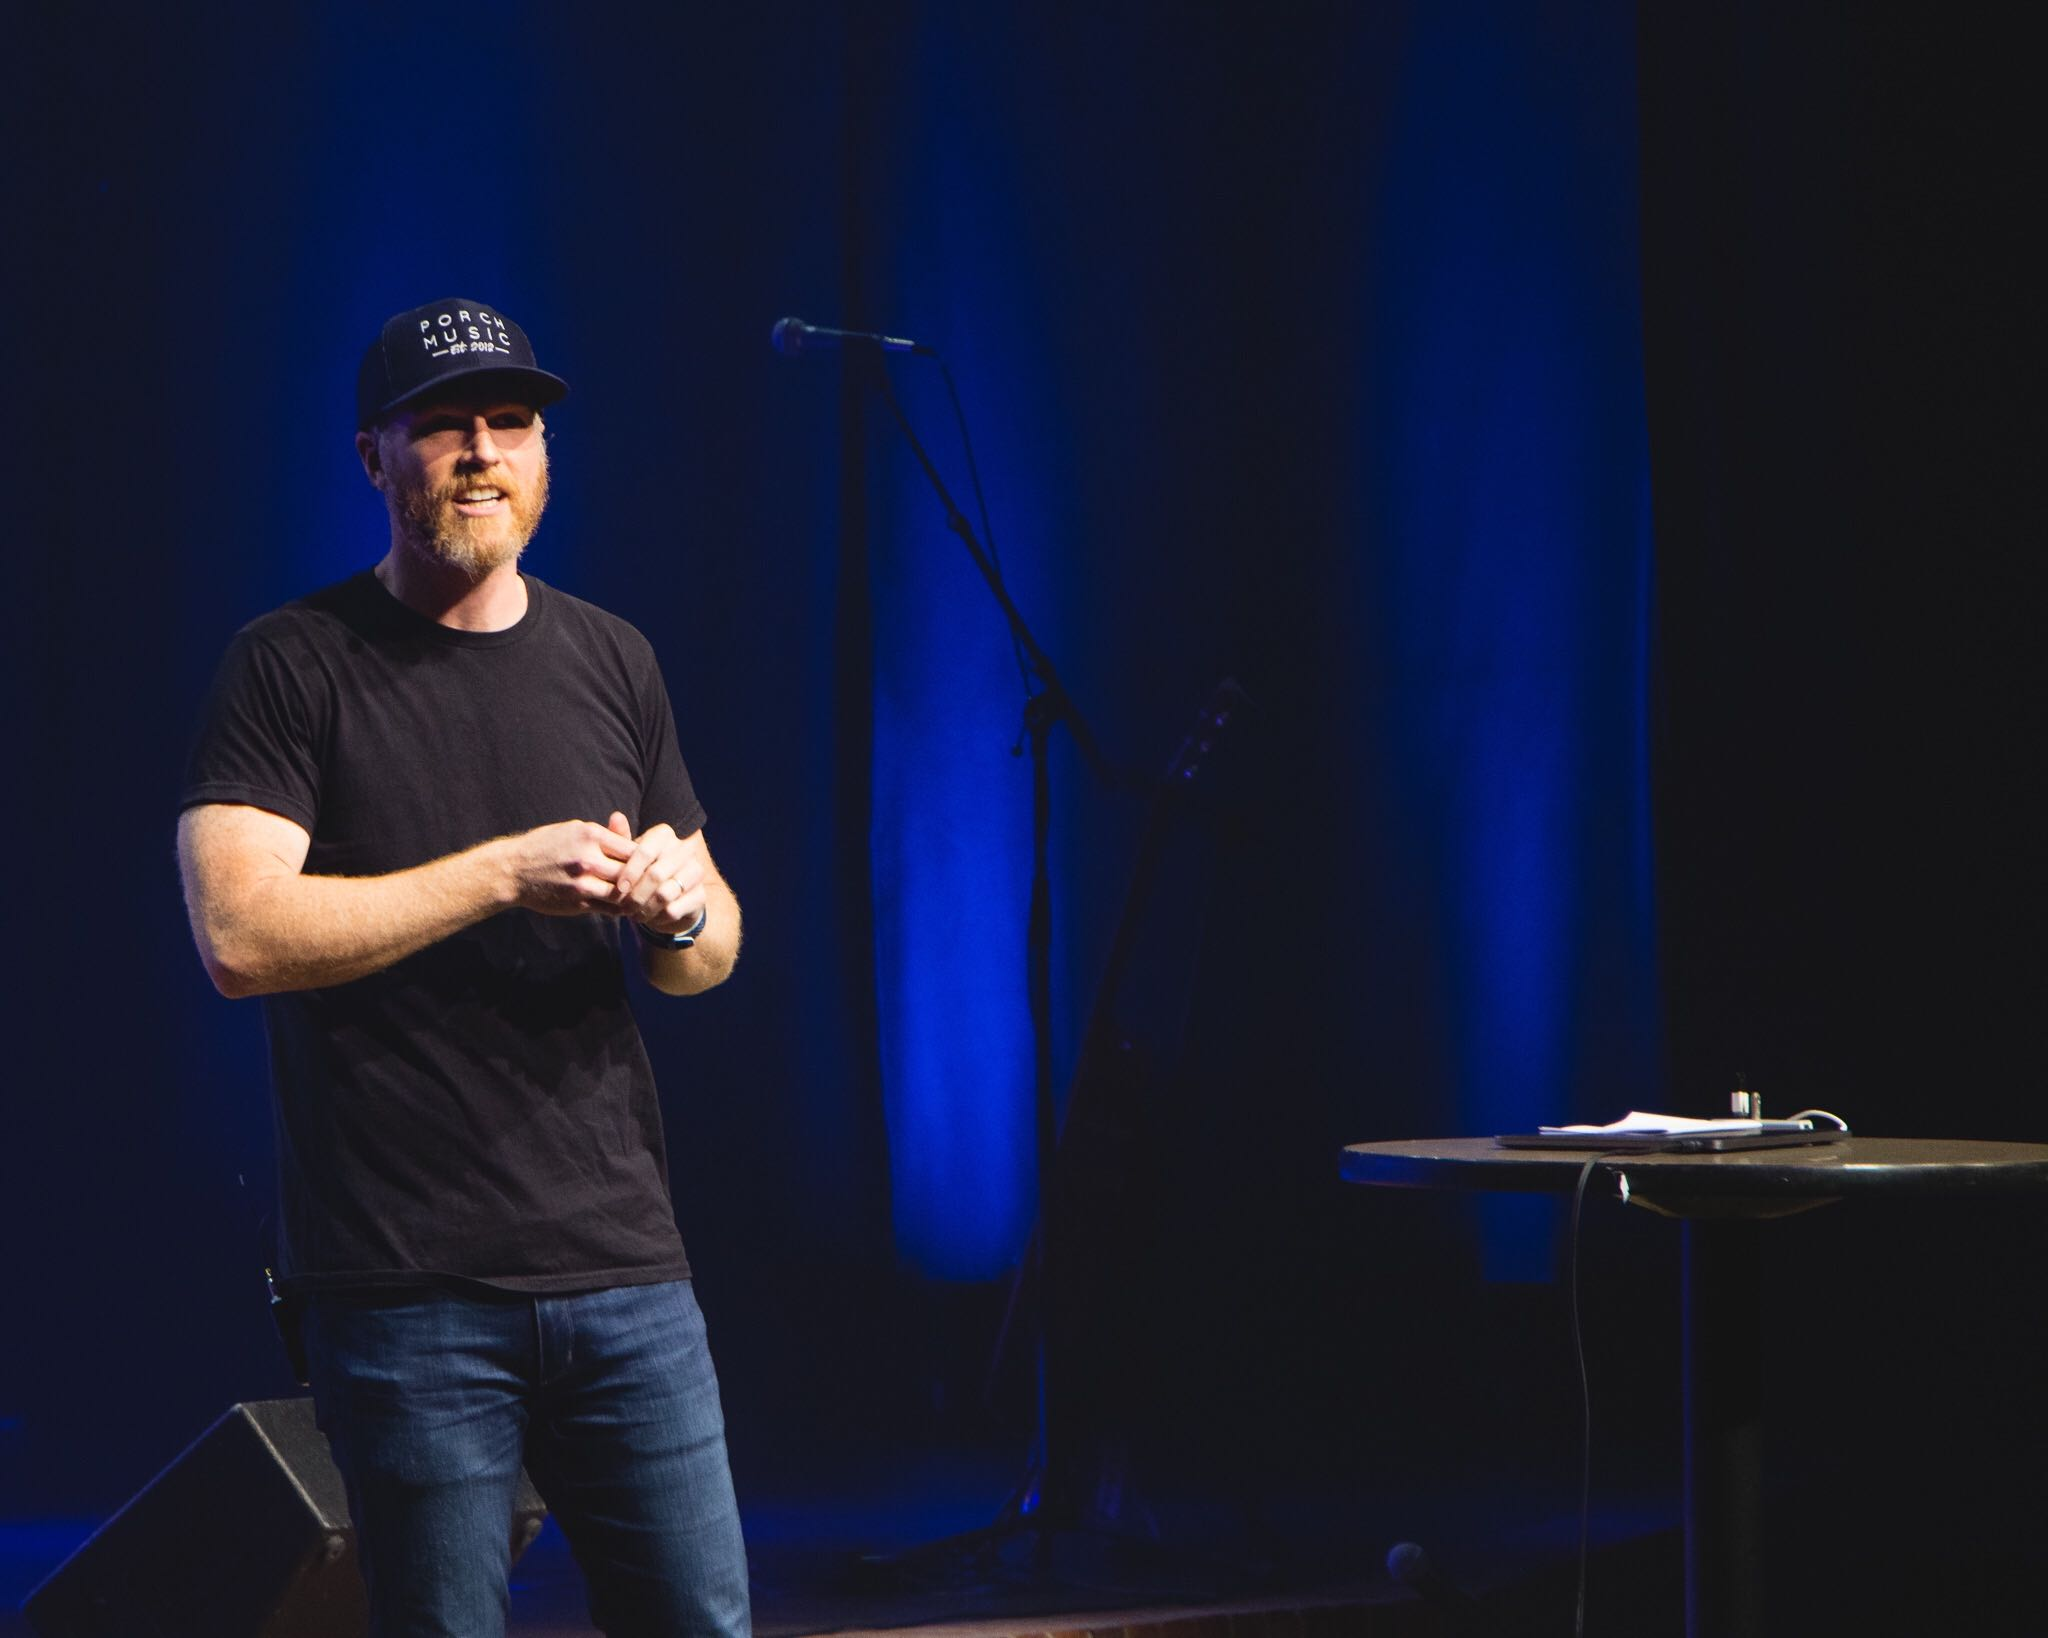 Nathan Chapman, a Lee alumnus and Grammy award-winning record producer, visted his alma mater on Tuesday to speak at chapel about his experience at Lee. Photo by Taylor Baker, Photo Editor.